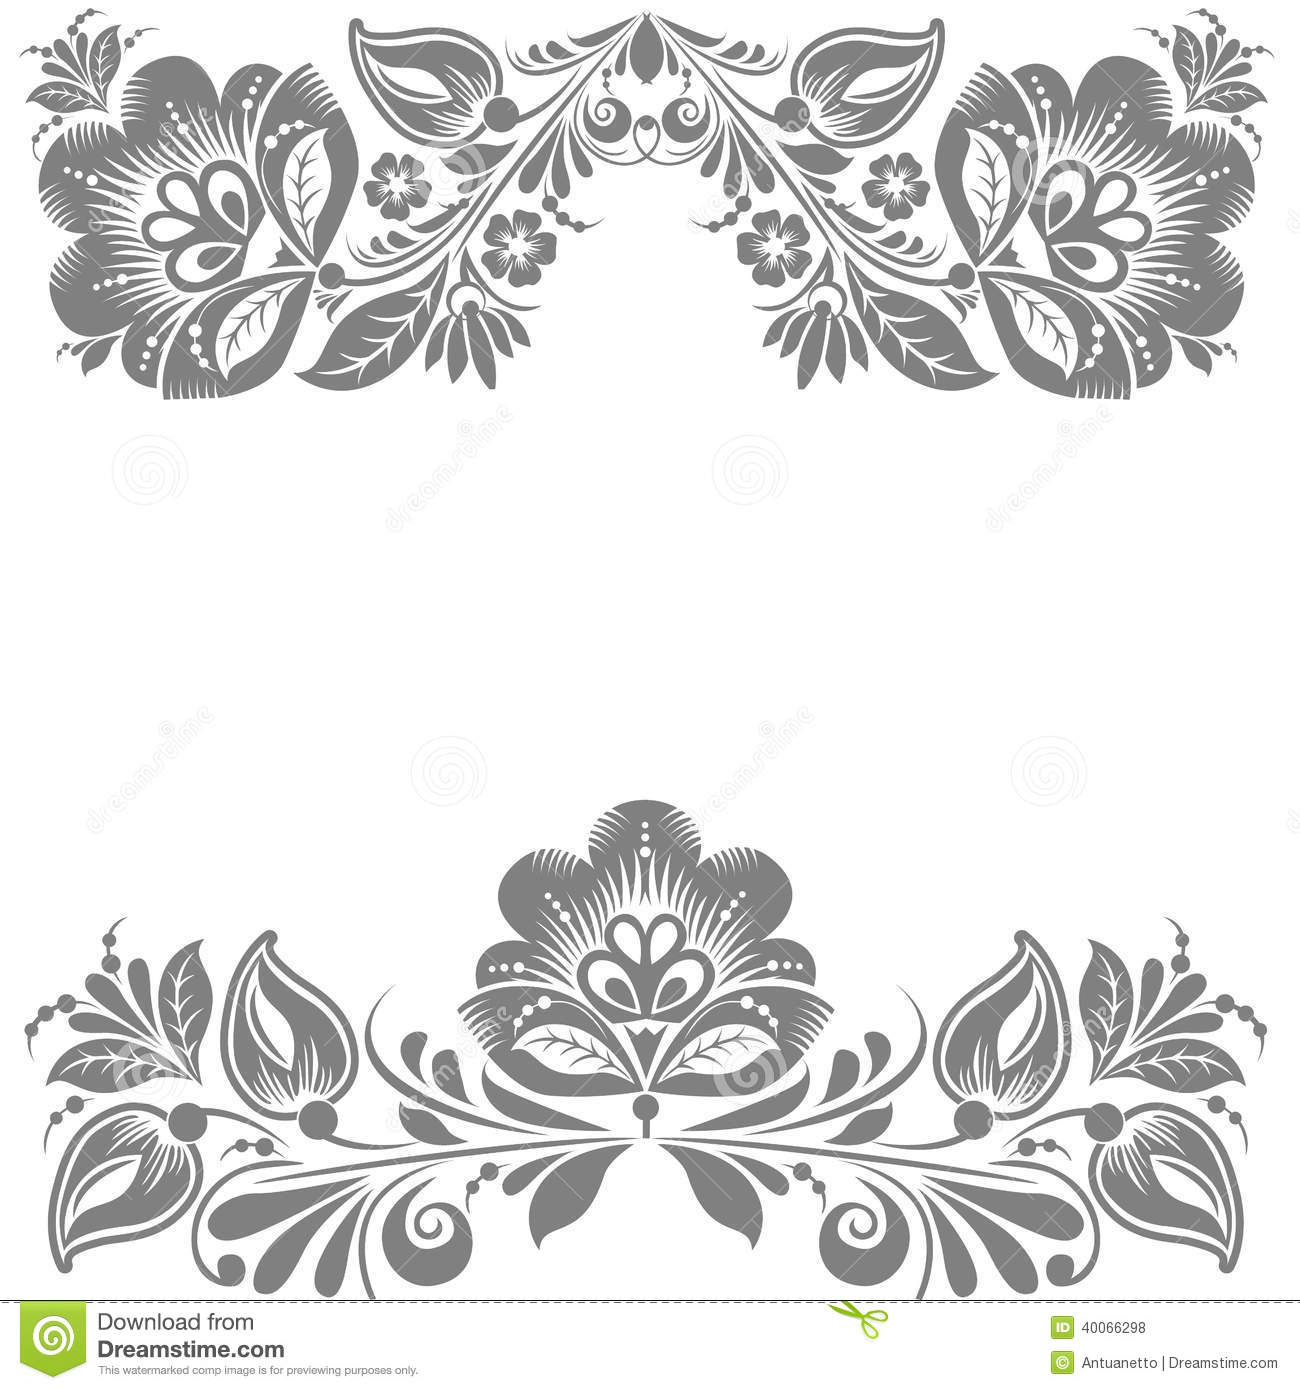 Flat X F in addition Canva Black And Gold Great Gatsby Invitation Maccsv Nqcm furthermore Img Large Watermarked likewise Floral Ornament Design Element Isolated White Background Illustration Vector as well Img Large Watermarked. on spiral black border